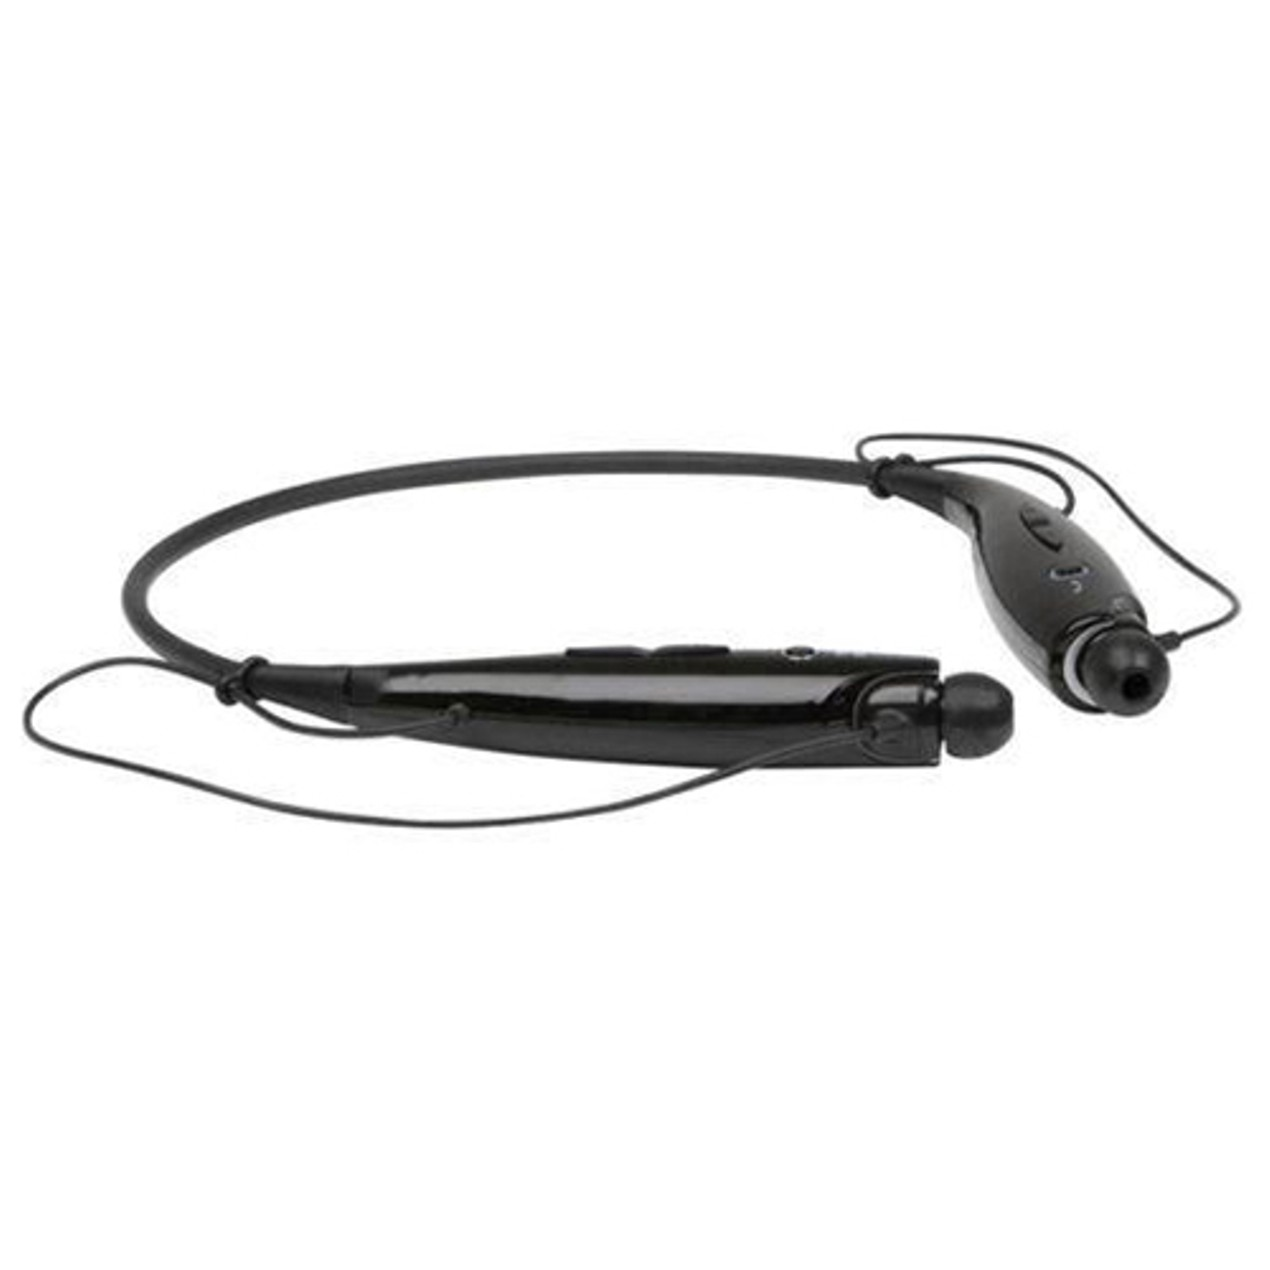 Lg Tone Hbs 730 Wireless Bluetooth Headset Tanga